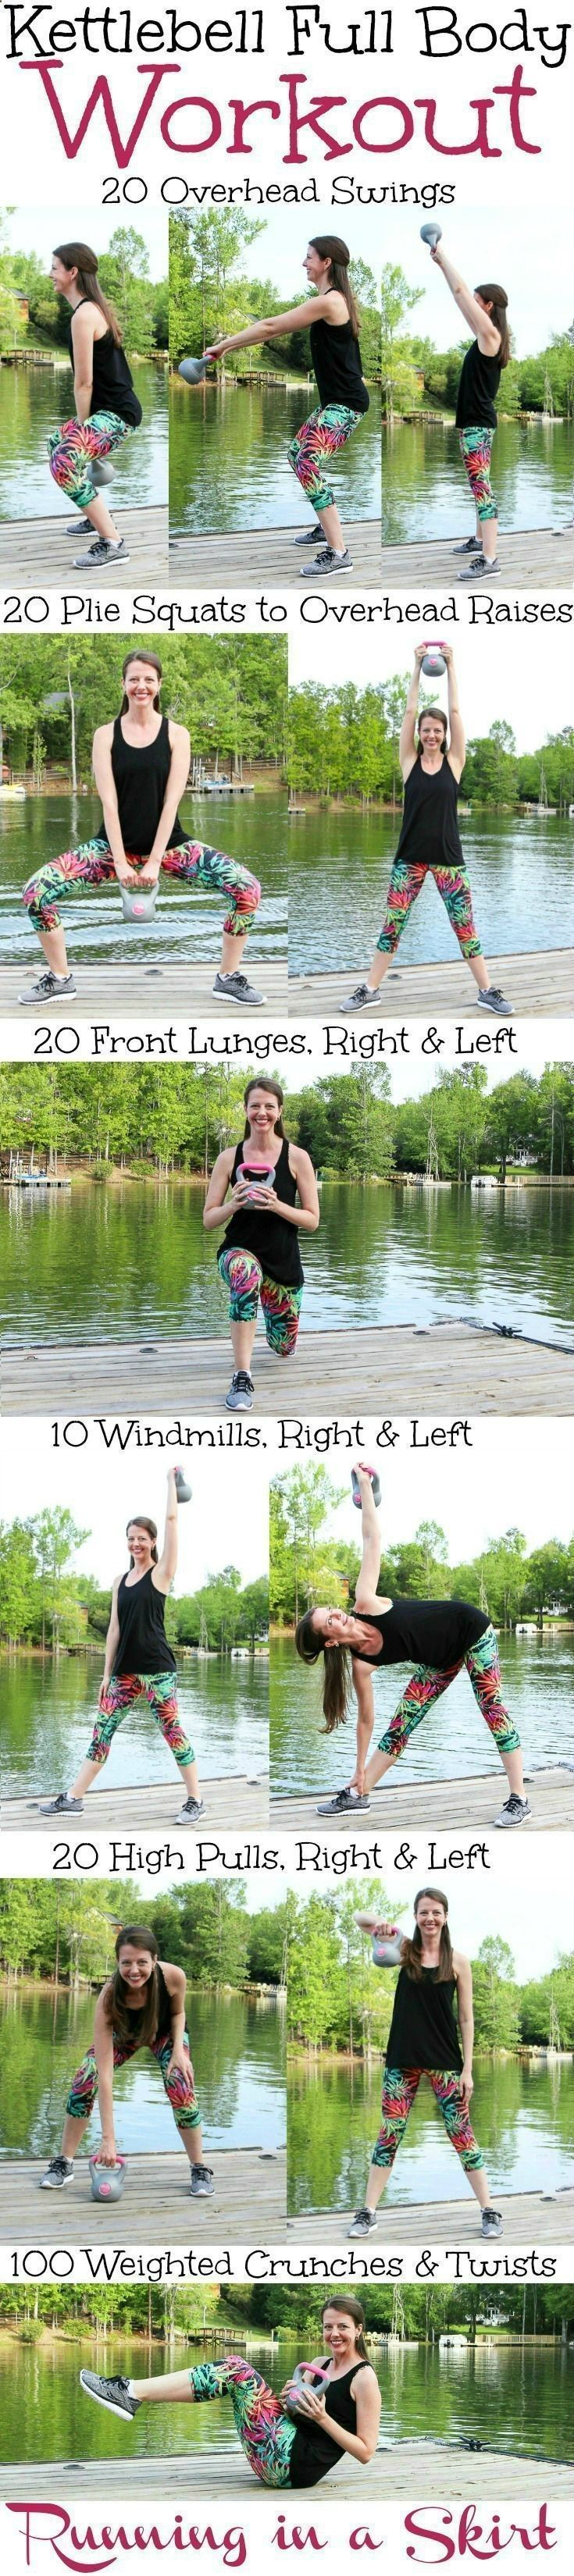 Food fat burning kettlebell full body workout a fat burning at